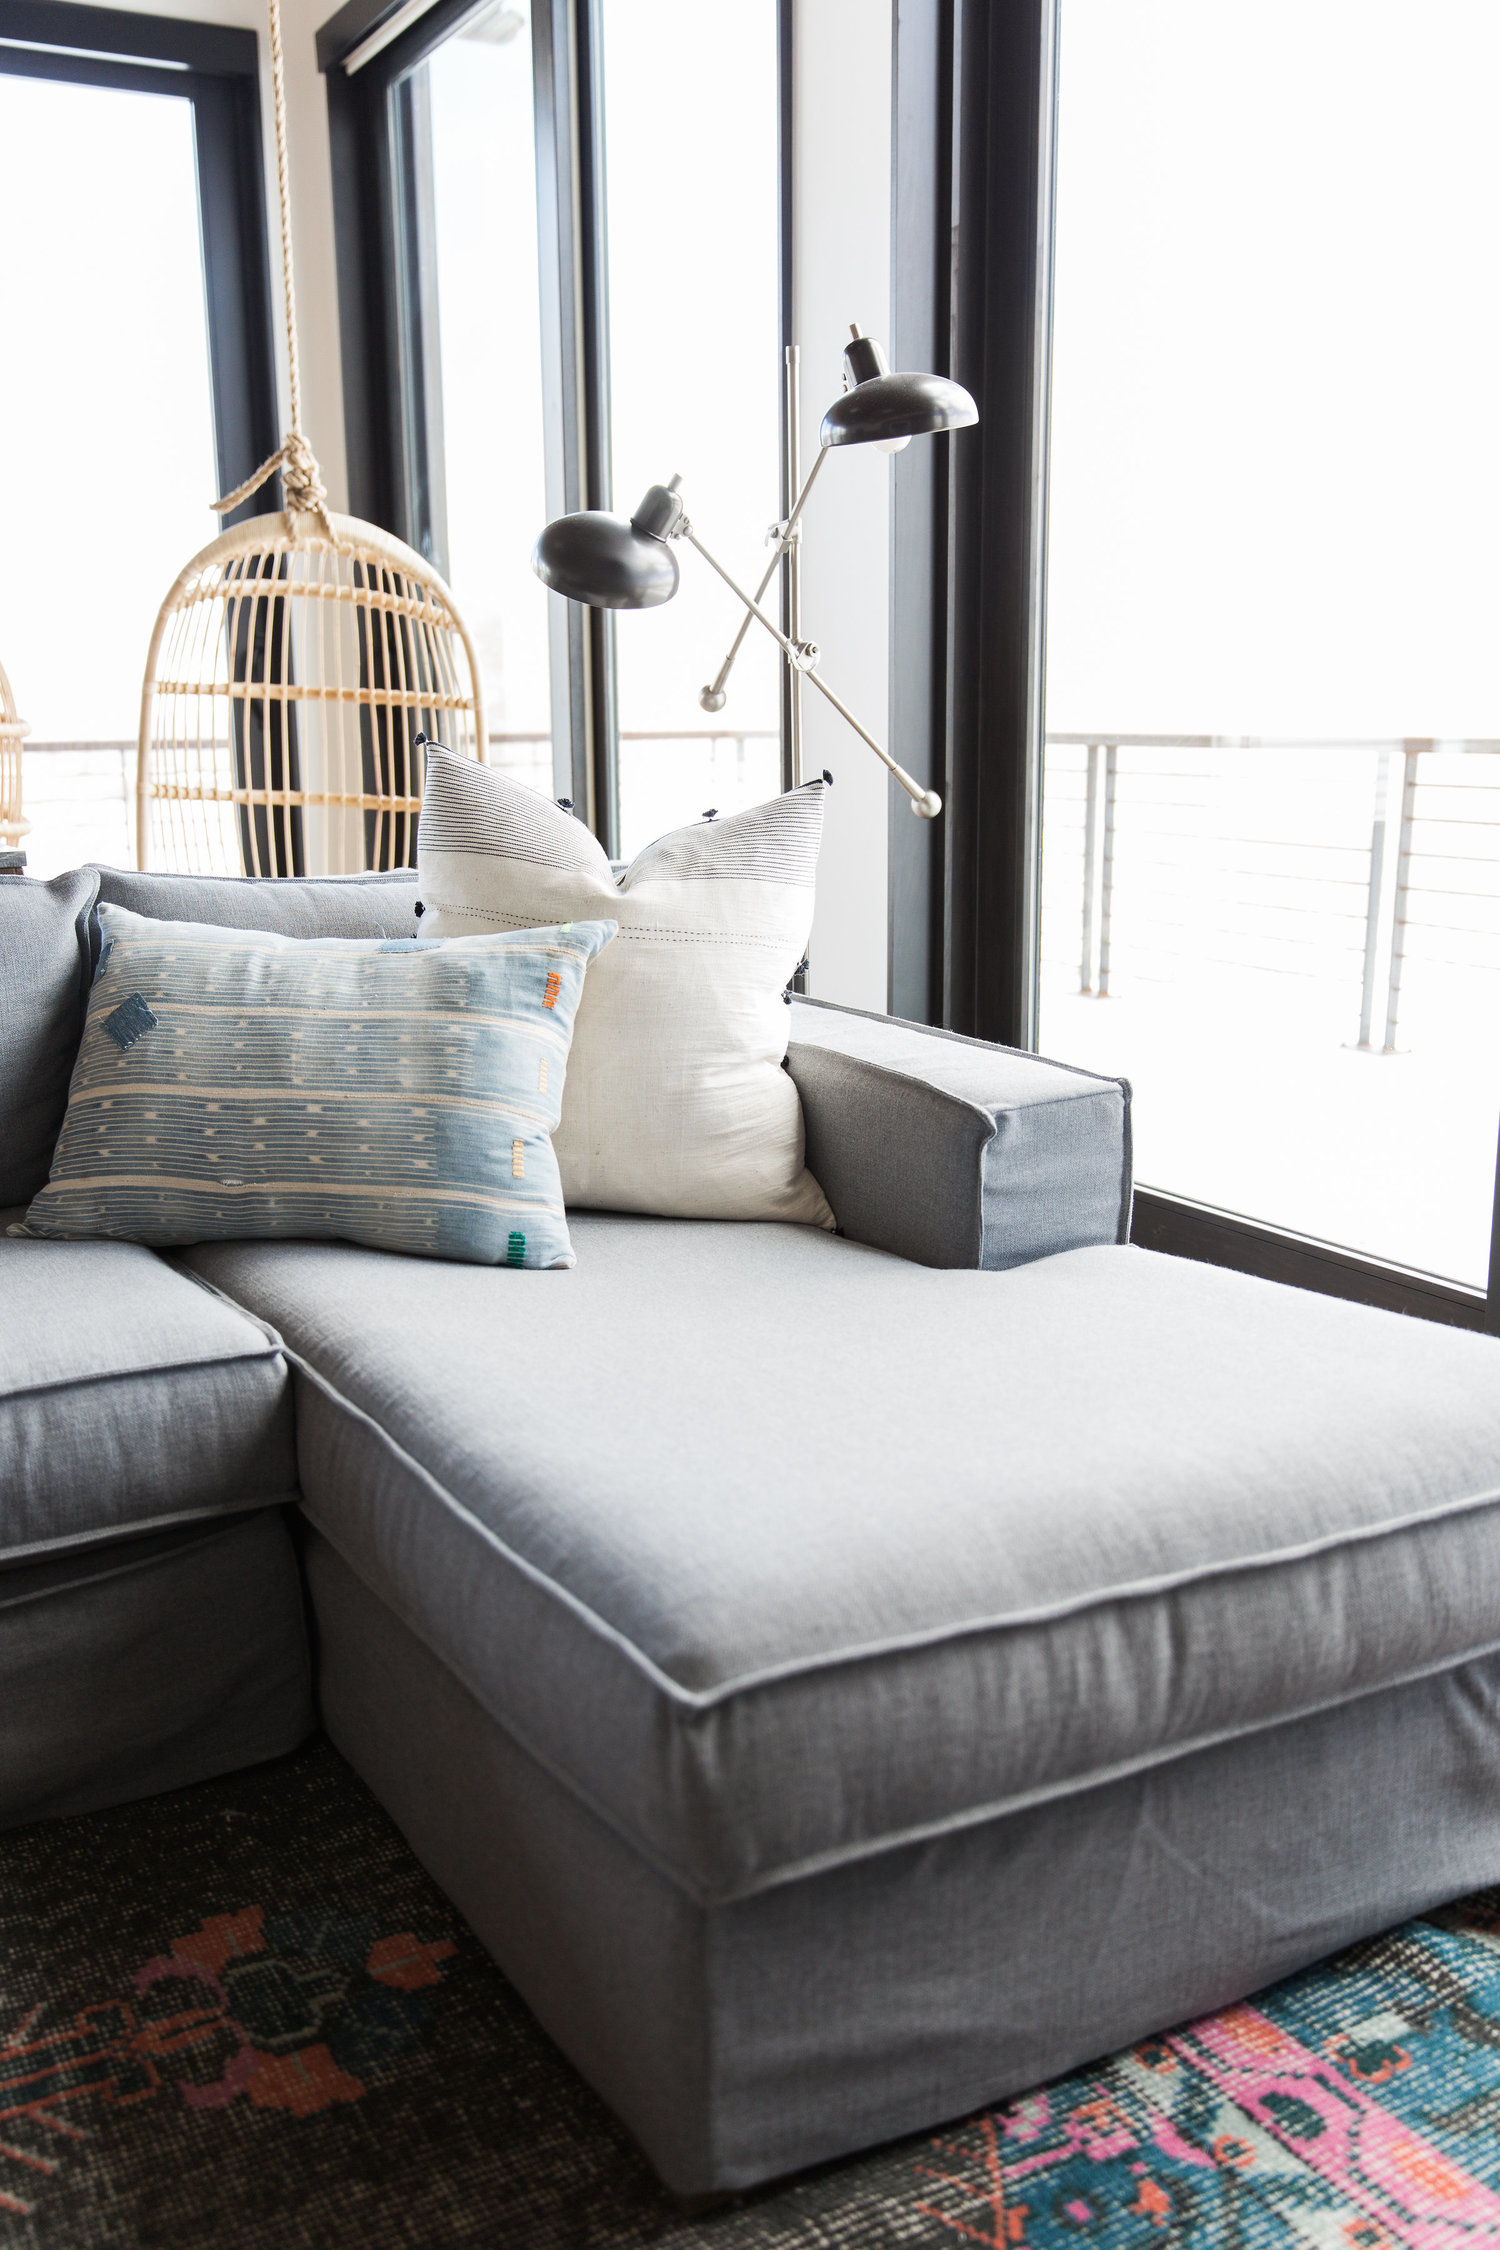 Footrest of grey sectional couch